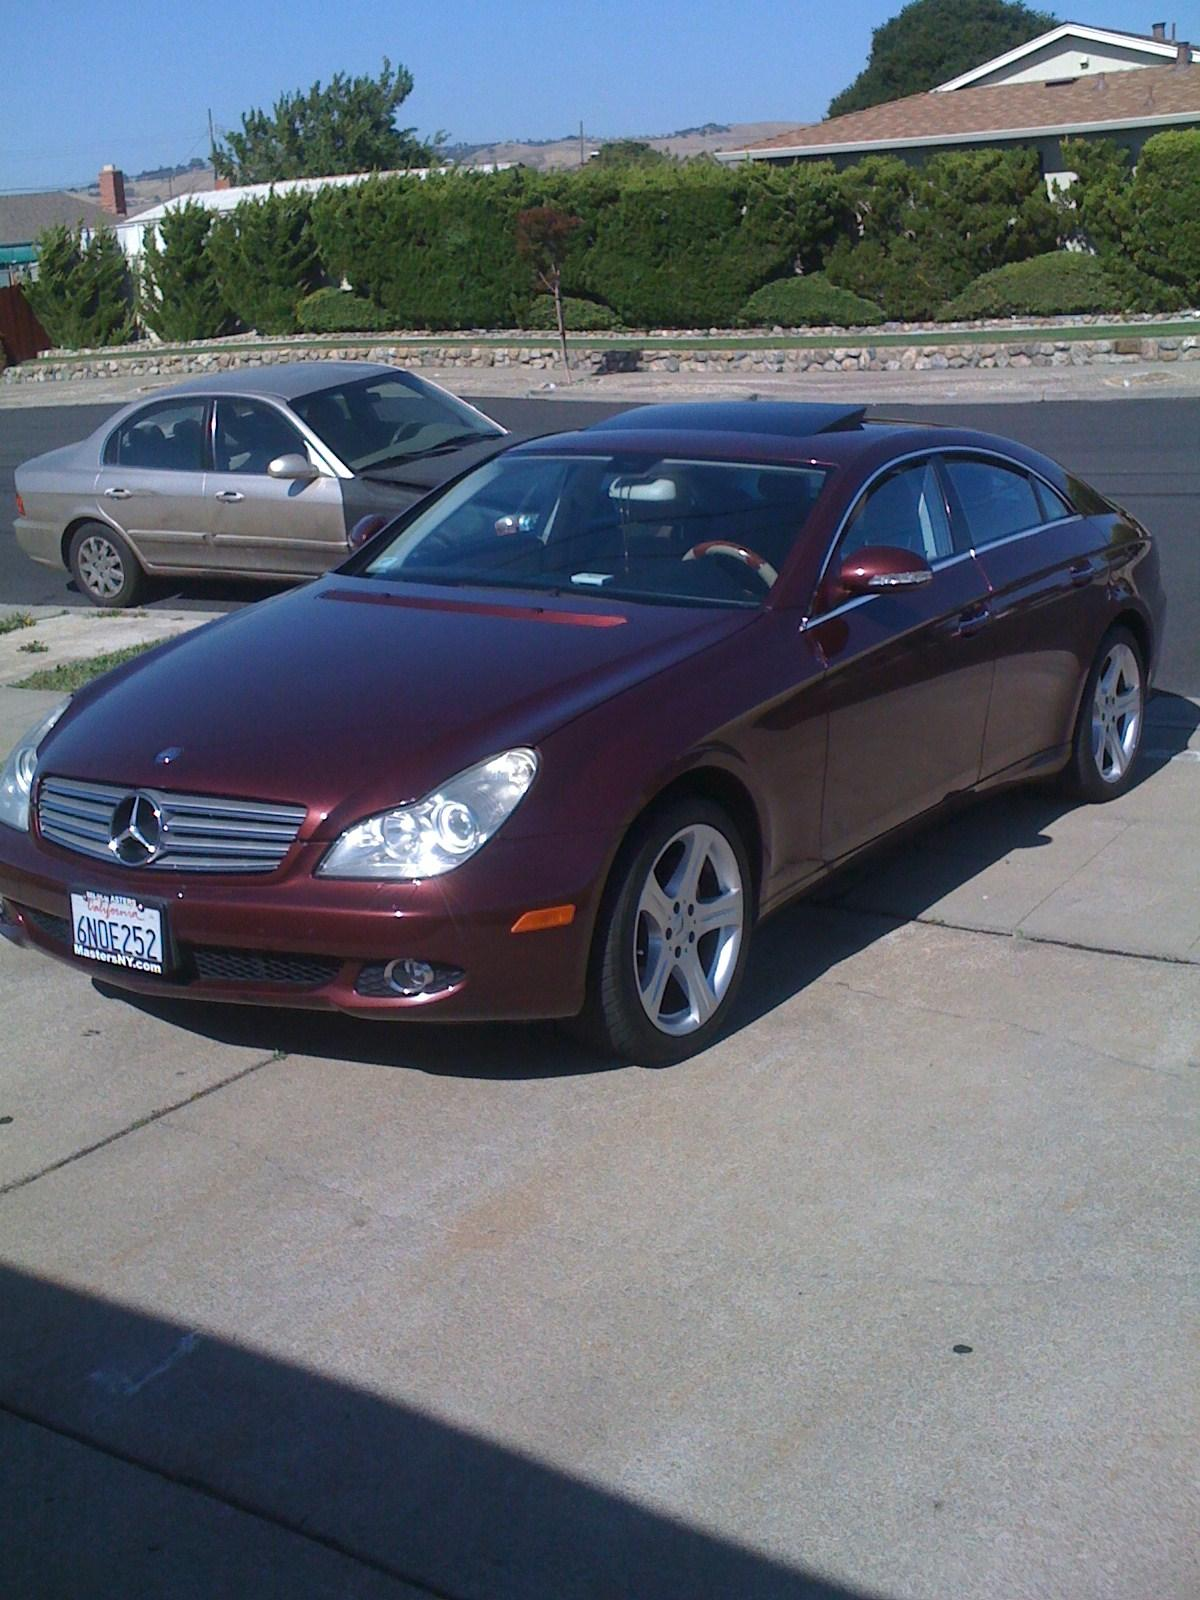 Cls ny to da bay 2007 mercedes benz cls classcls550 coupe for 2007 mercedes benz cls class